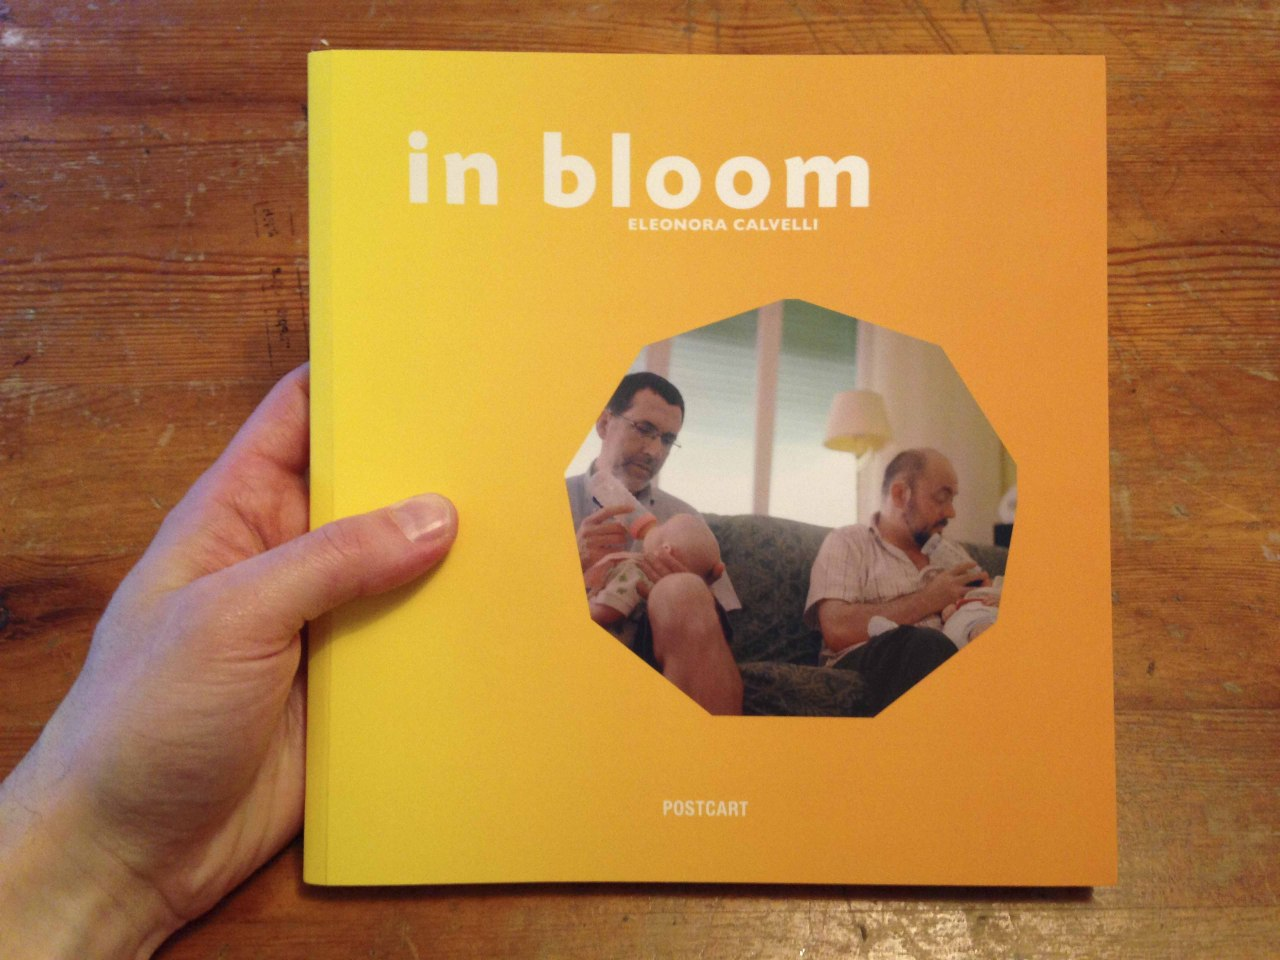 In Bloom has arrived safely…